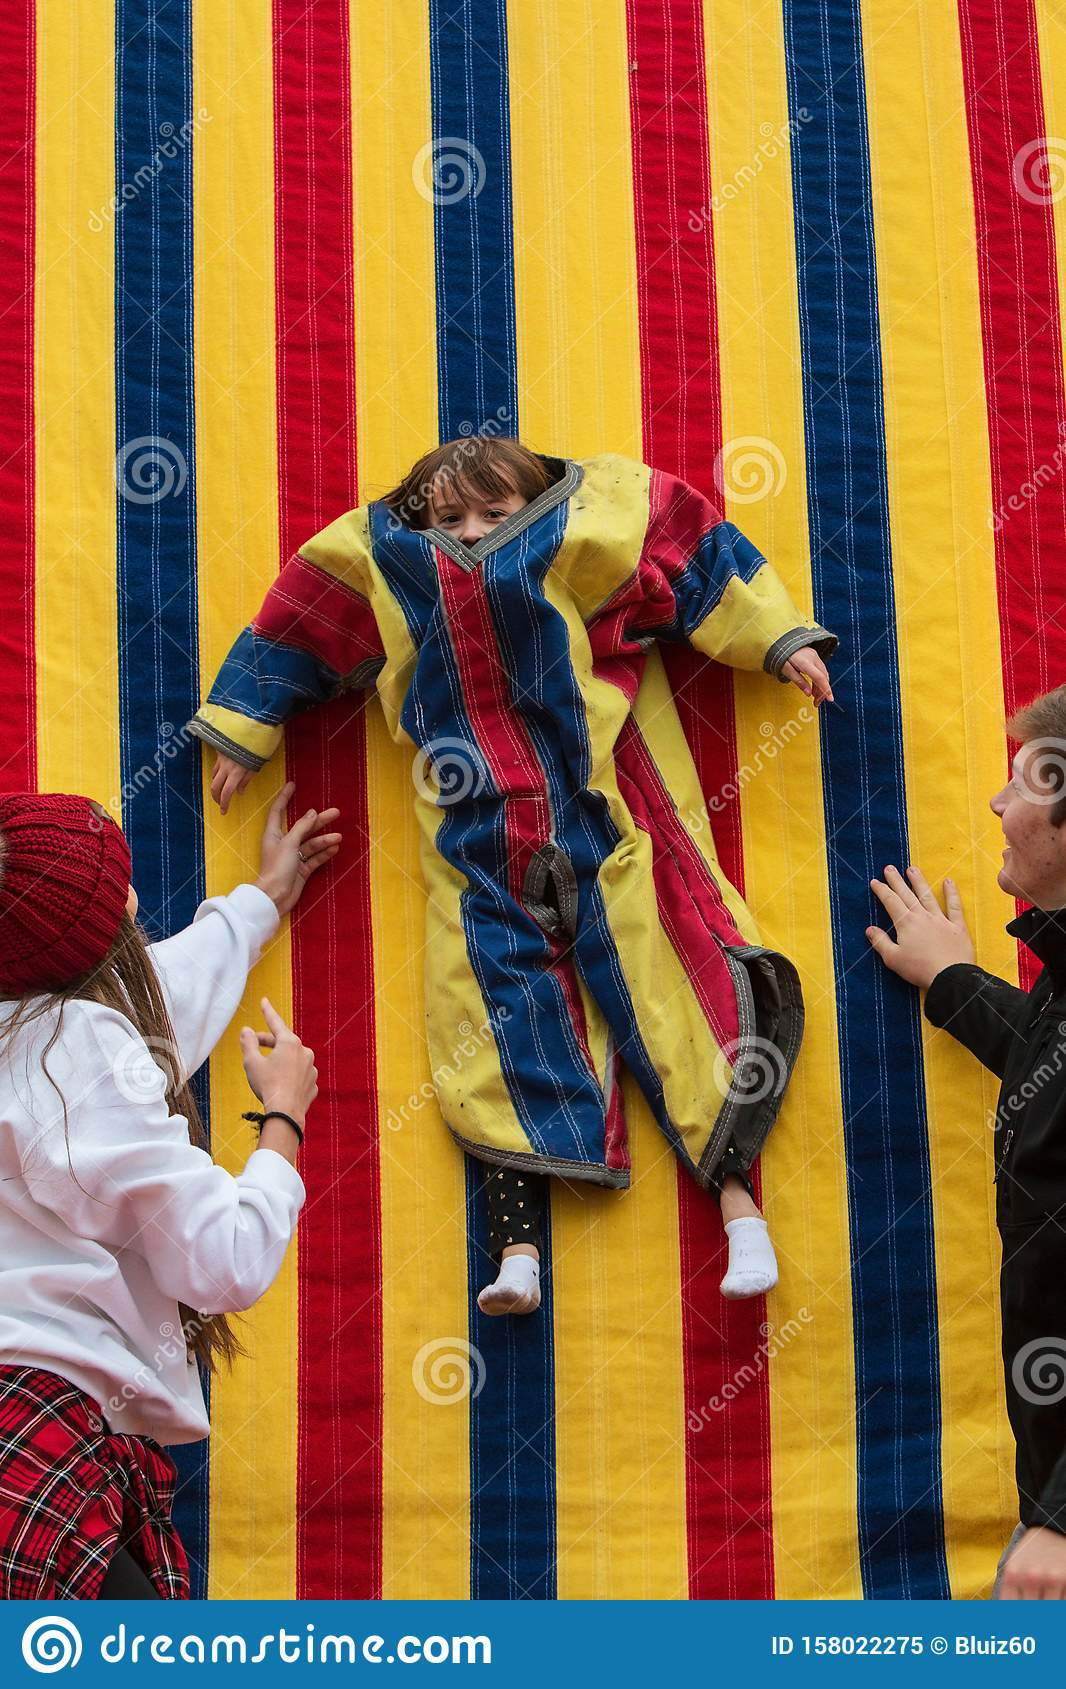 Child Wearing Velcro Suit Is Suspended Against Sticky Wall ...